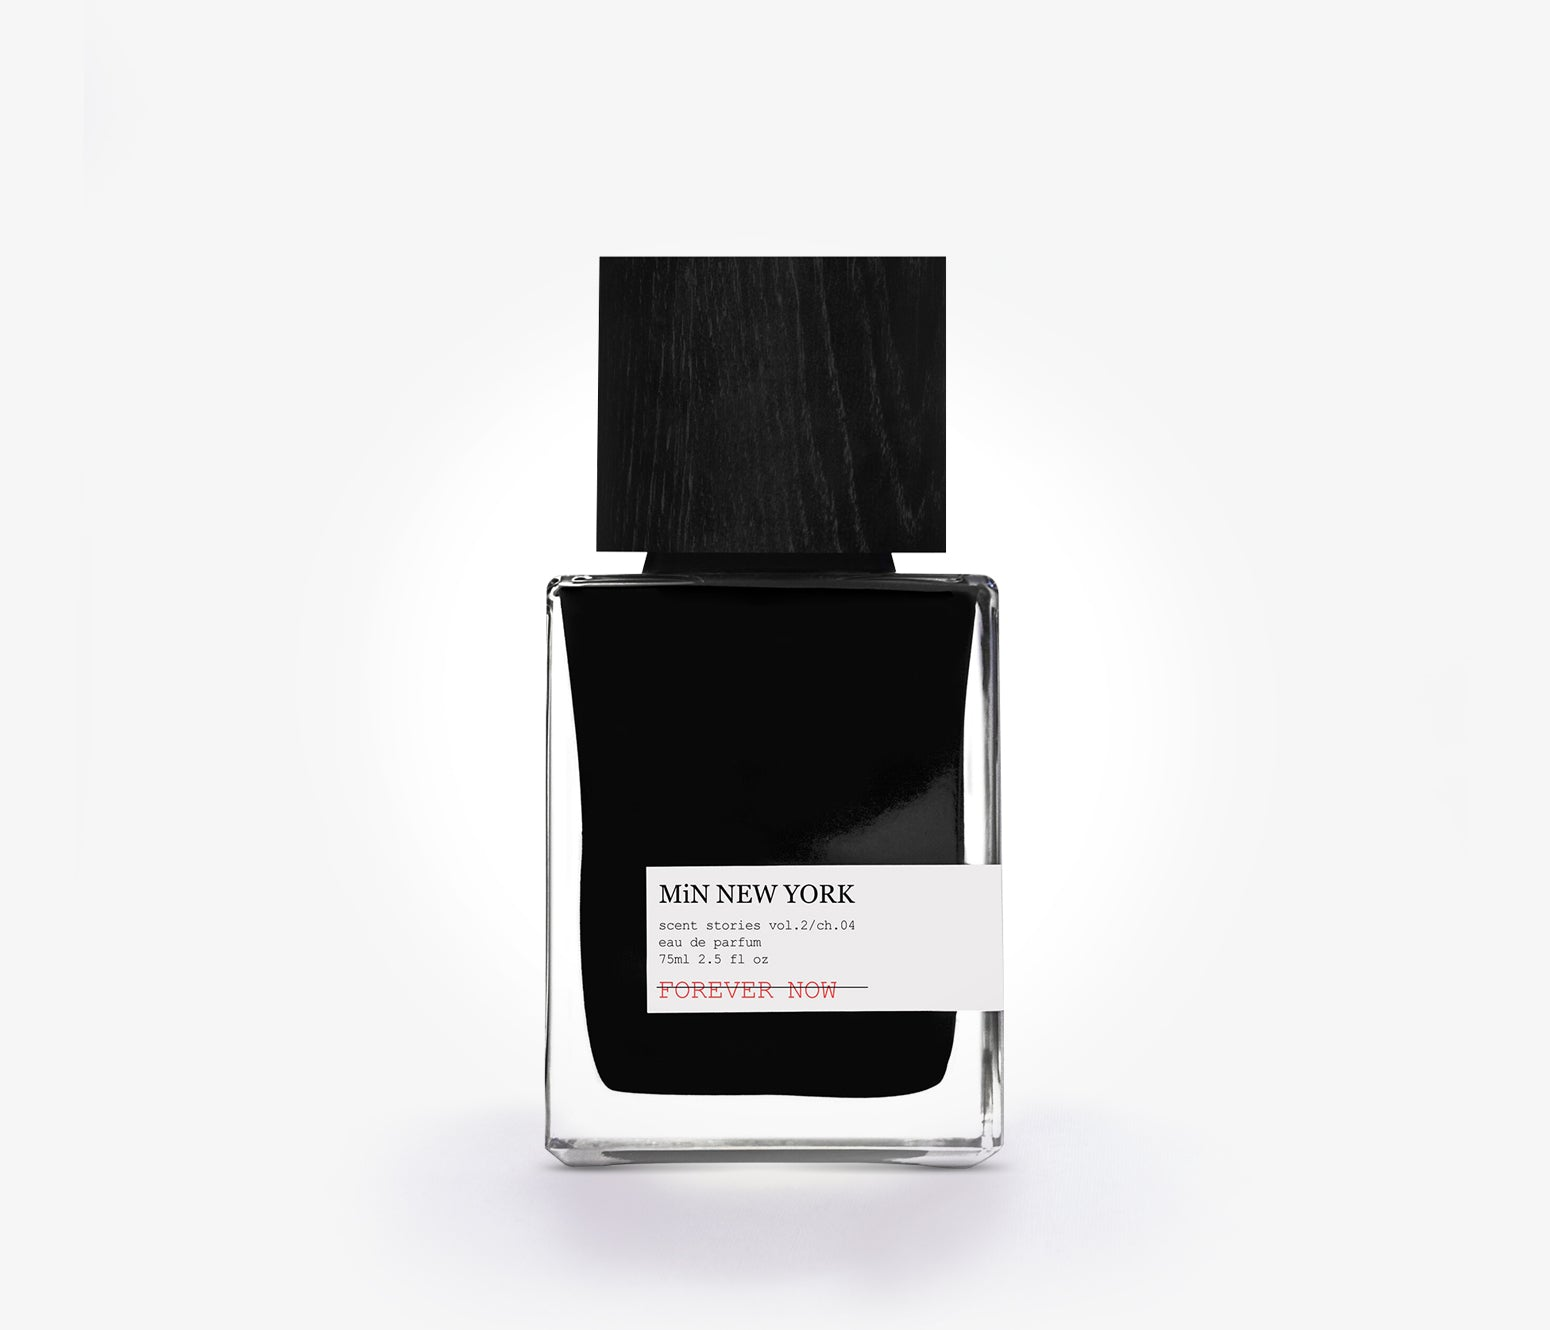 MiN New York - Forever Now - 75ml - AGR001 - Product Image - Fragrance - Les Senteurs